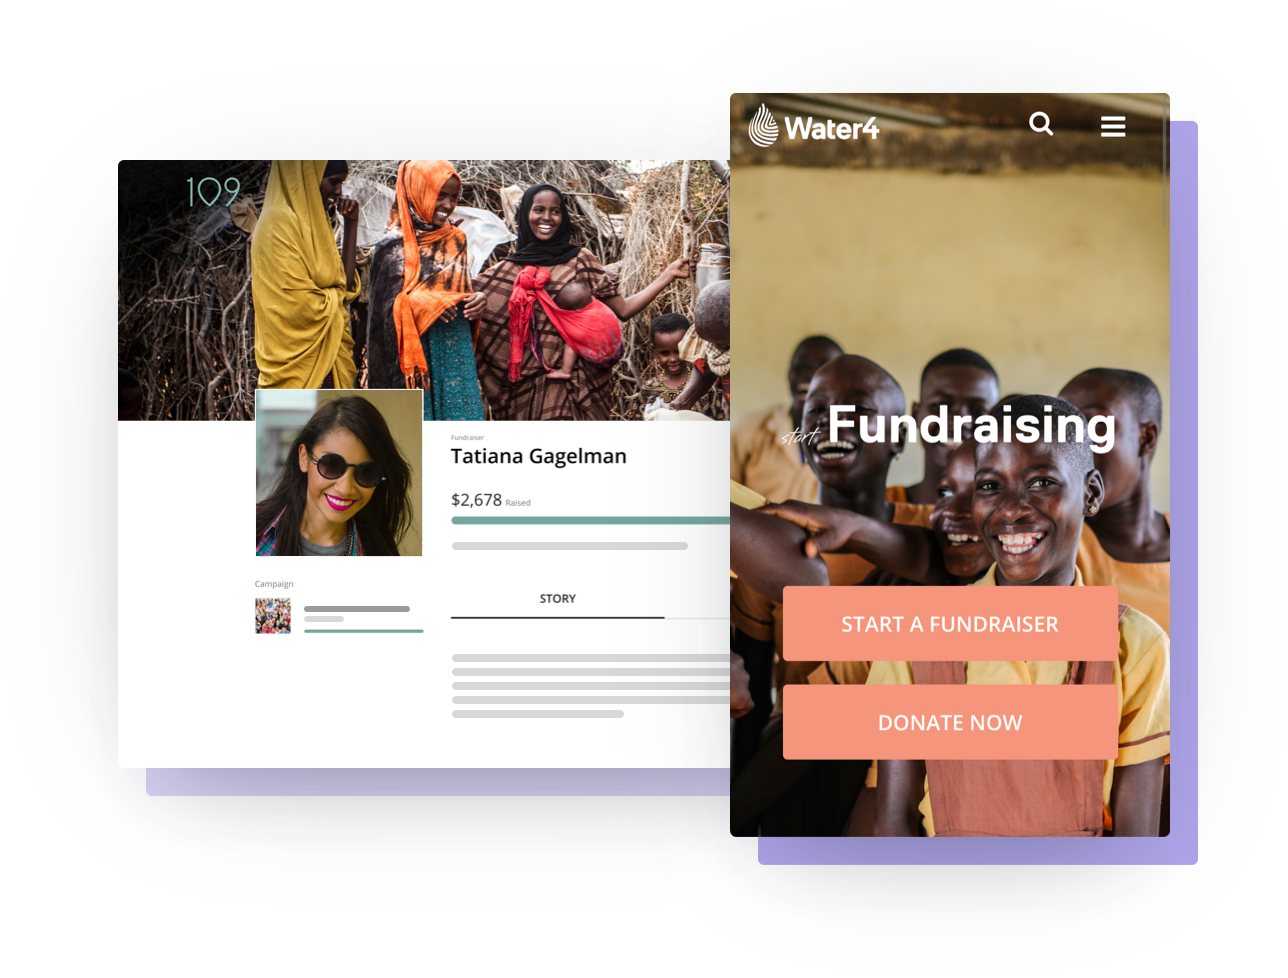 Peer-to-peer fundraising examples on both desktop and mobile devices